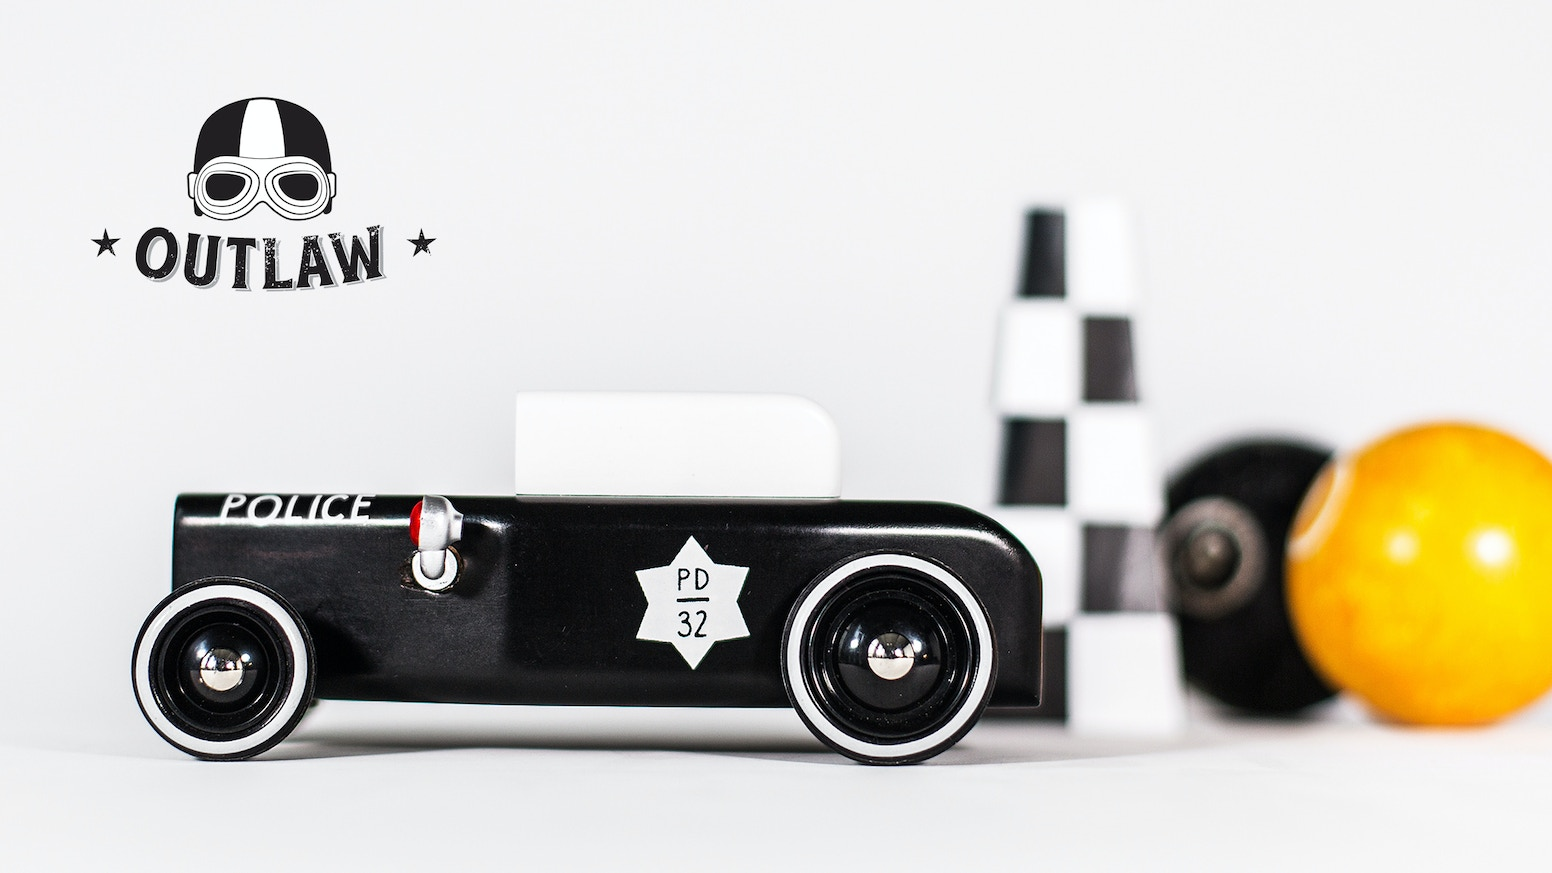 Wooden toy cars, inspired by the Art Deco Era and the roaring American 20's